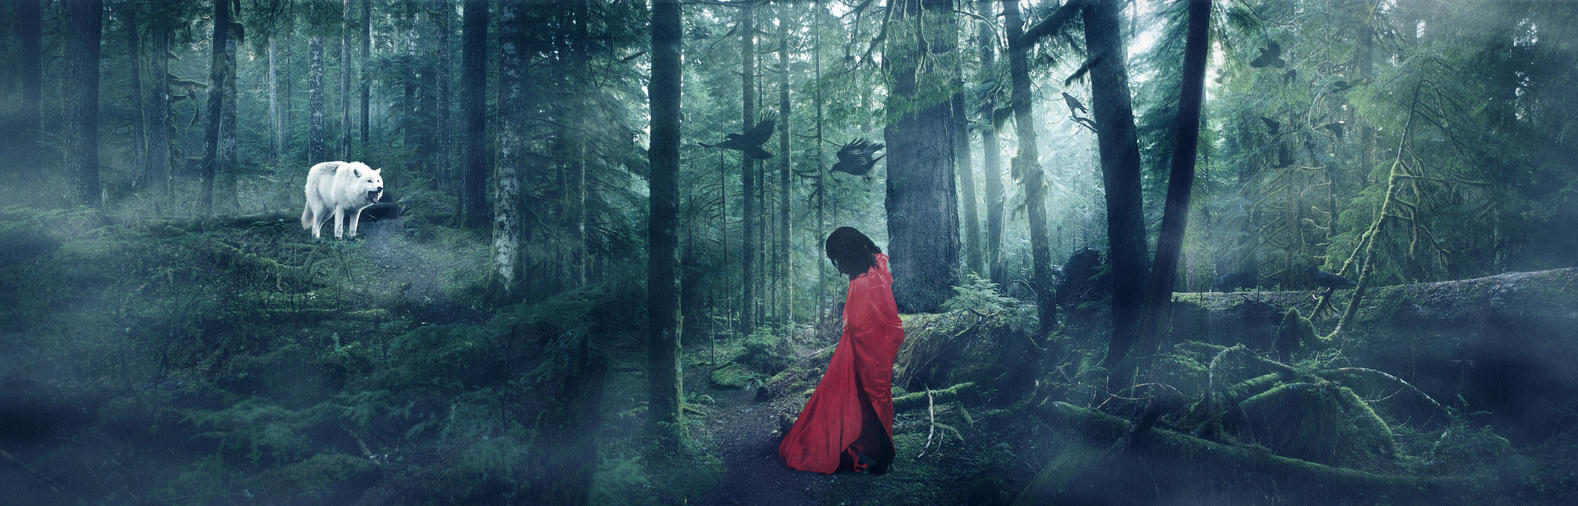 In The Woods by BENAFOG